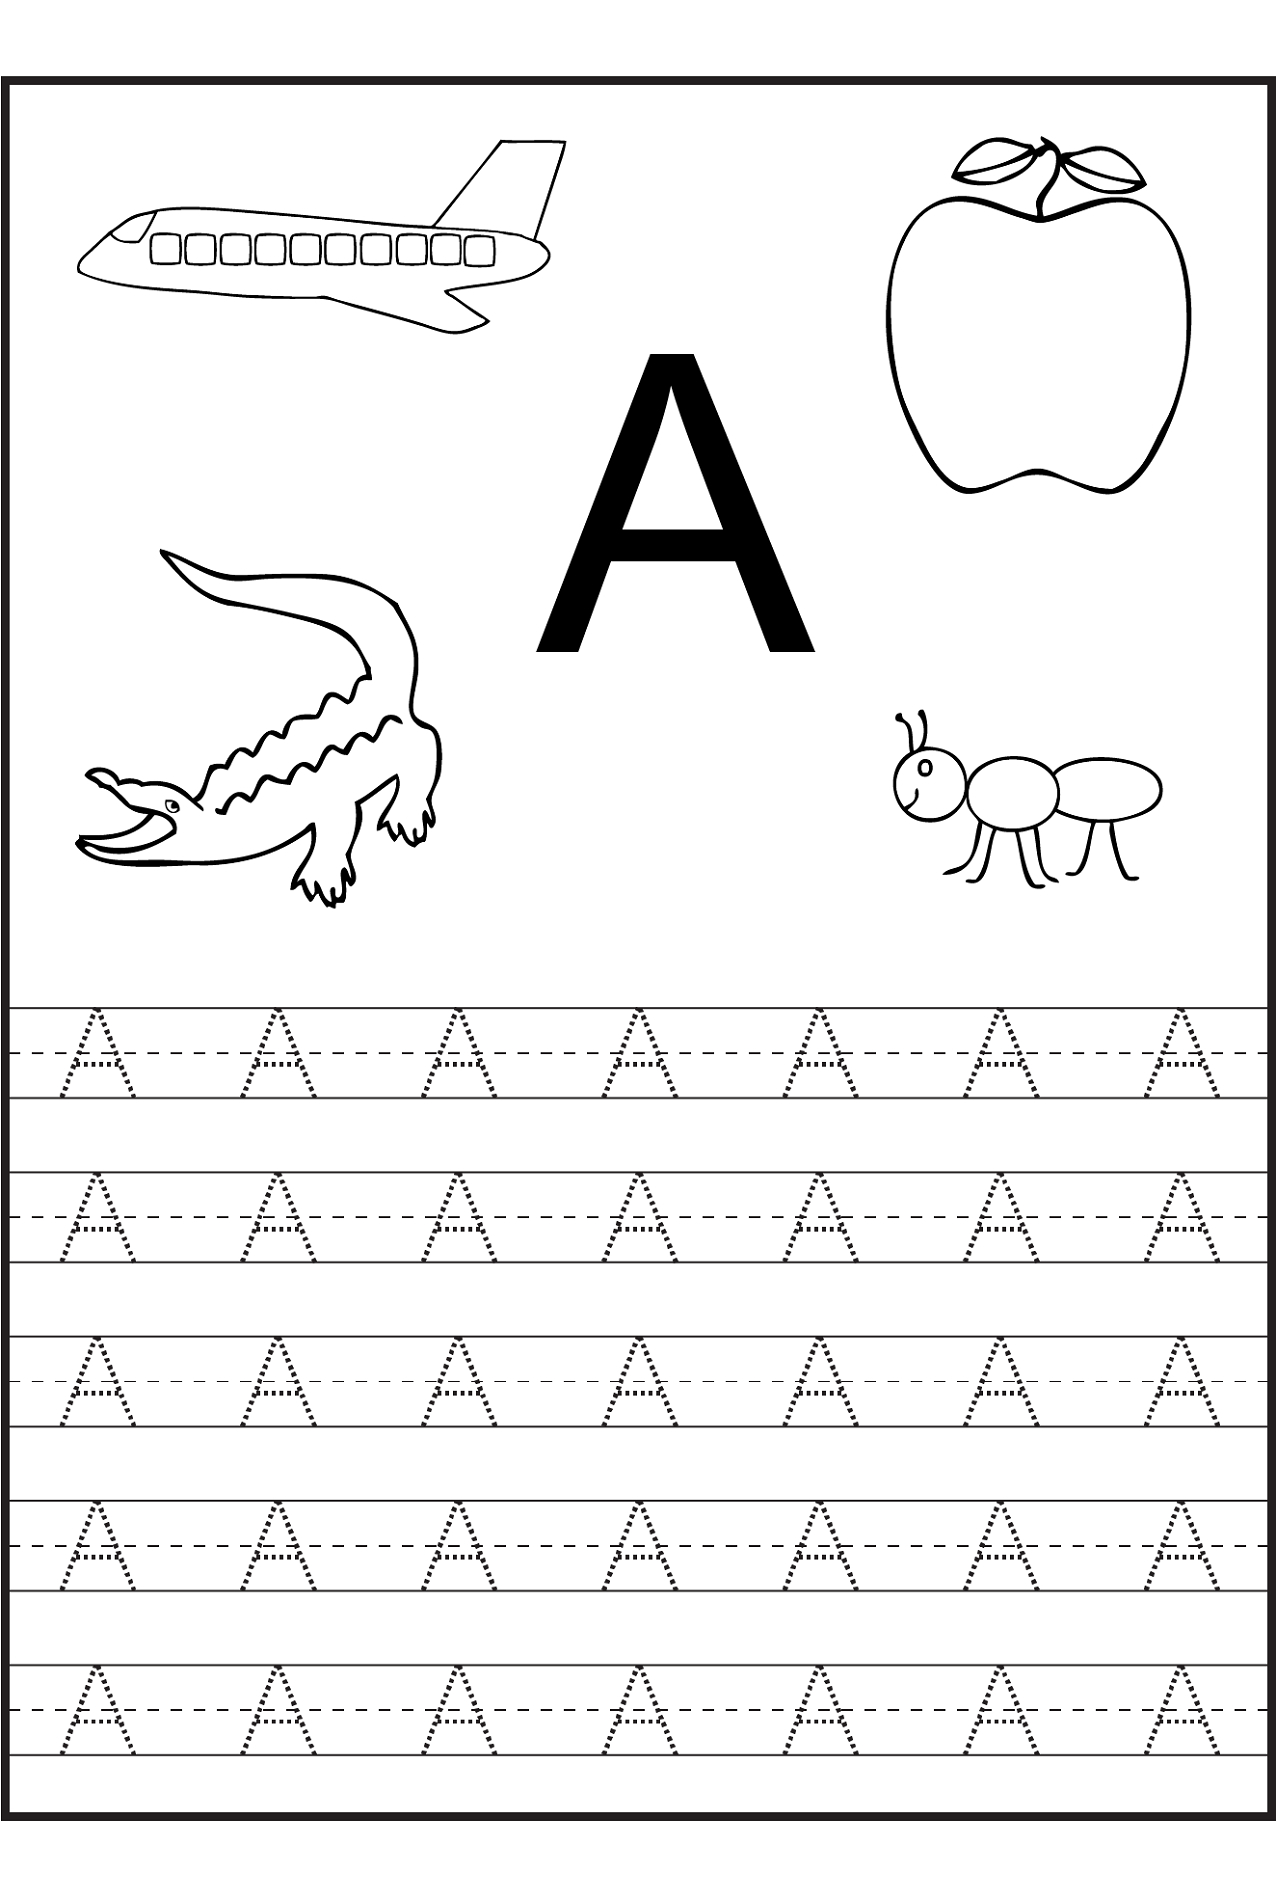 Worksheets Pages : Preschool Alphabet Tracing Worksheets Free - Free Printable Alphabet Pages